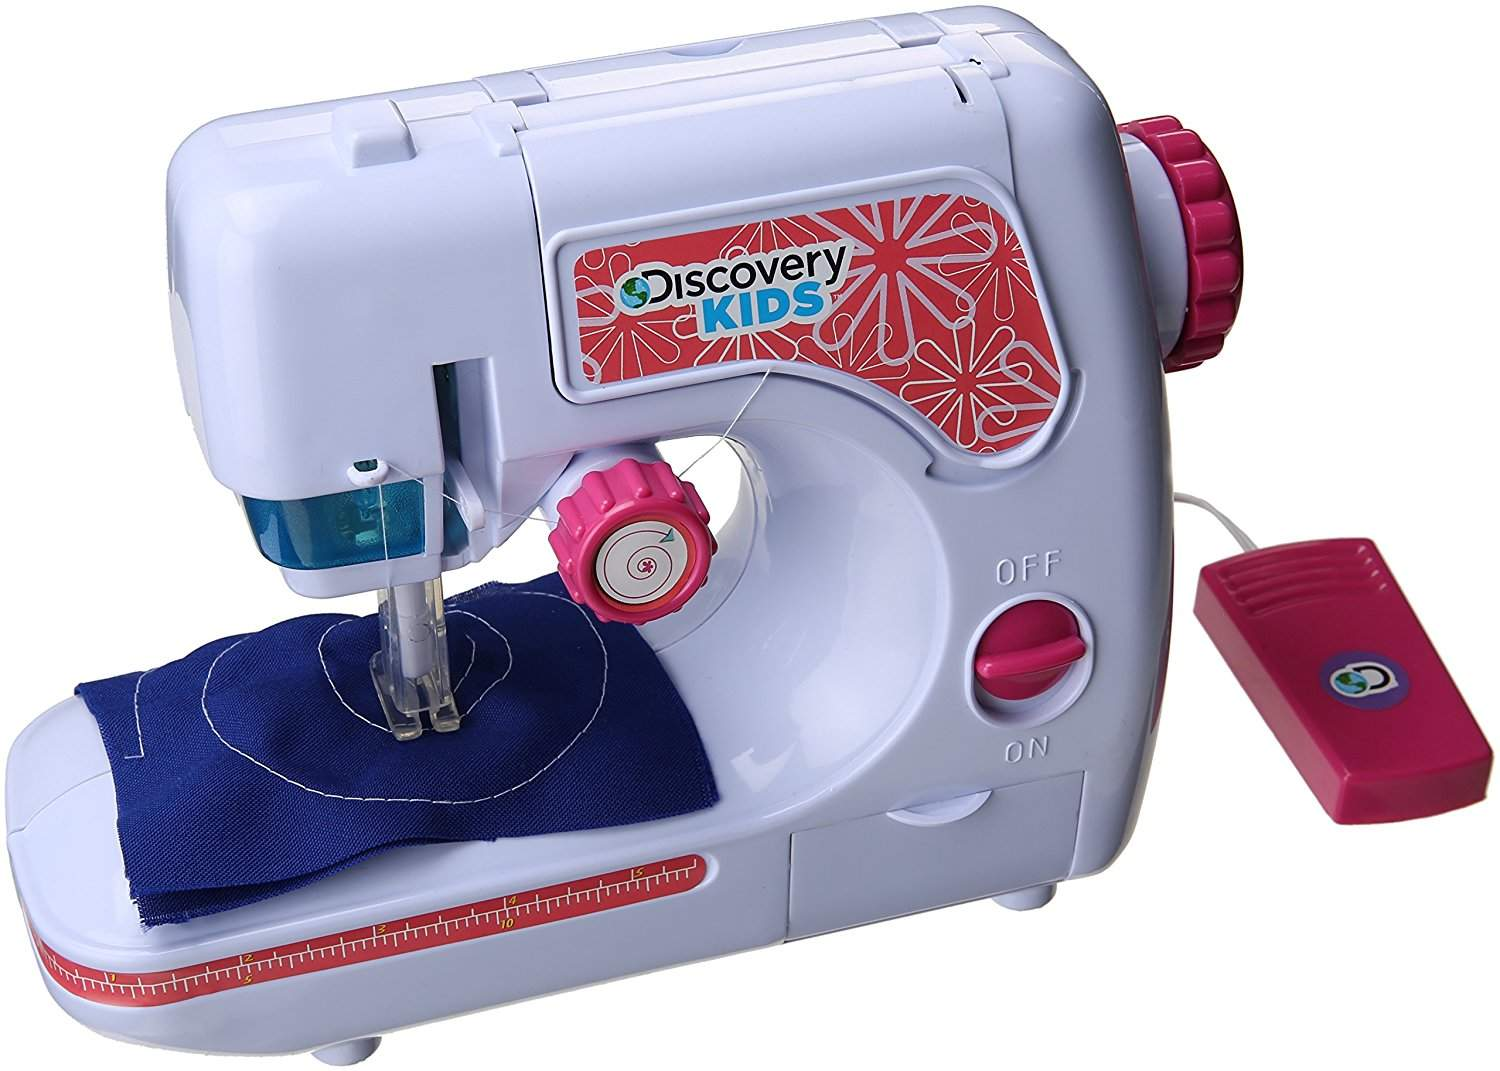 children's sewing machine for beginners